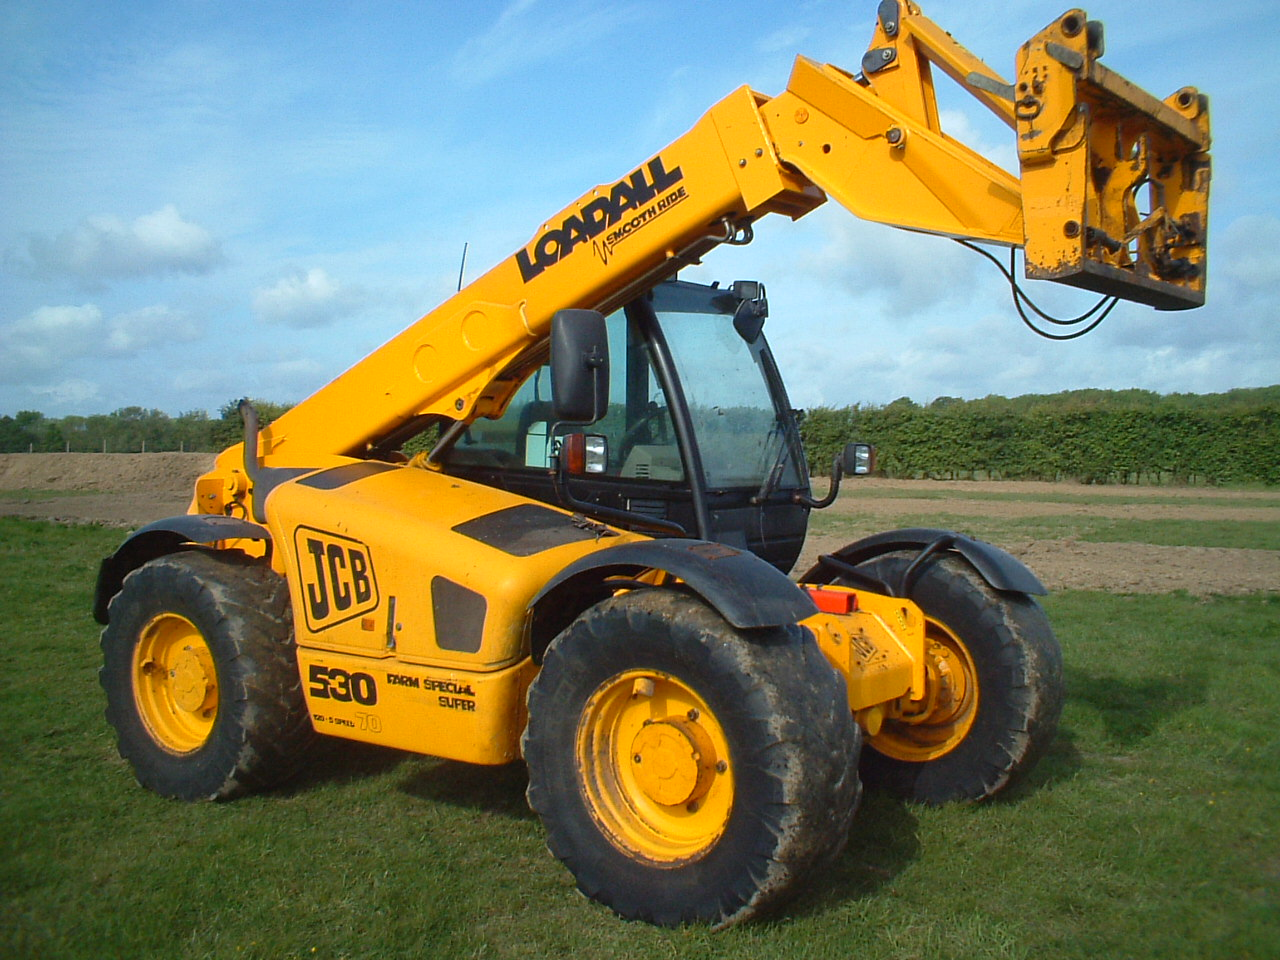 Jcb 214 Backhoe Service Manual Various Owner Guide Wiring Schematic Free Picture Diagram 930 520 Odicis Pdf Series 3 Parts